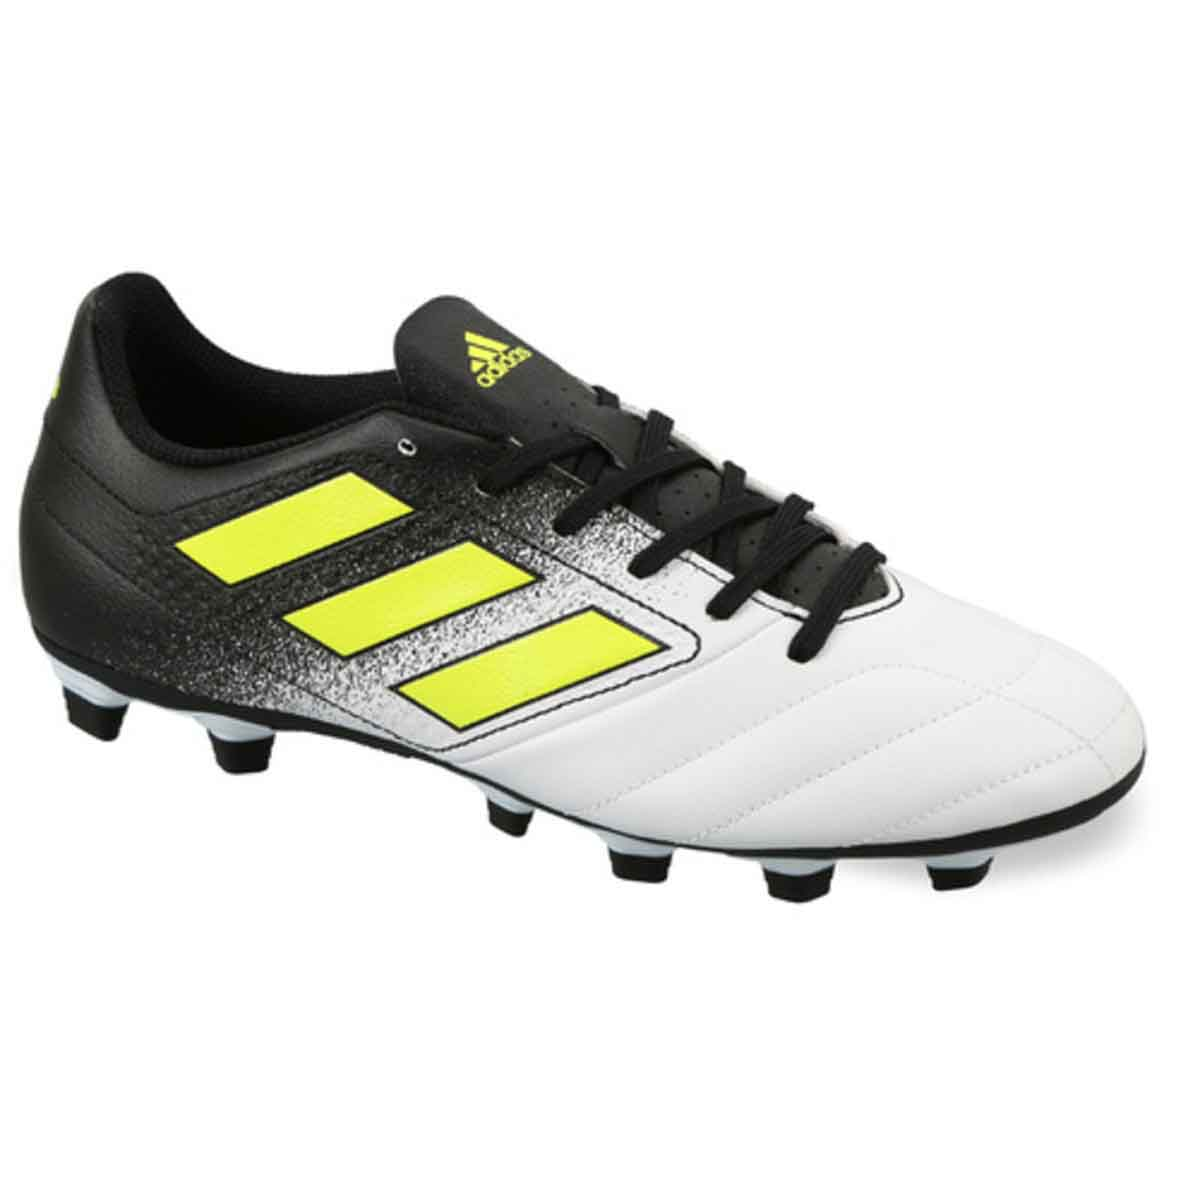 lowest price 38f2c 53c99 Adidas ACE 17.4 FXG Football Shoes